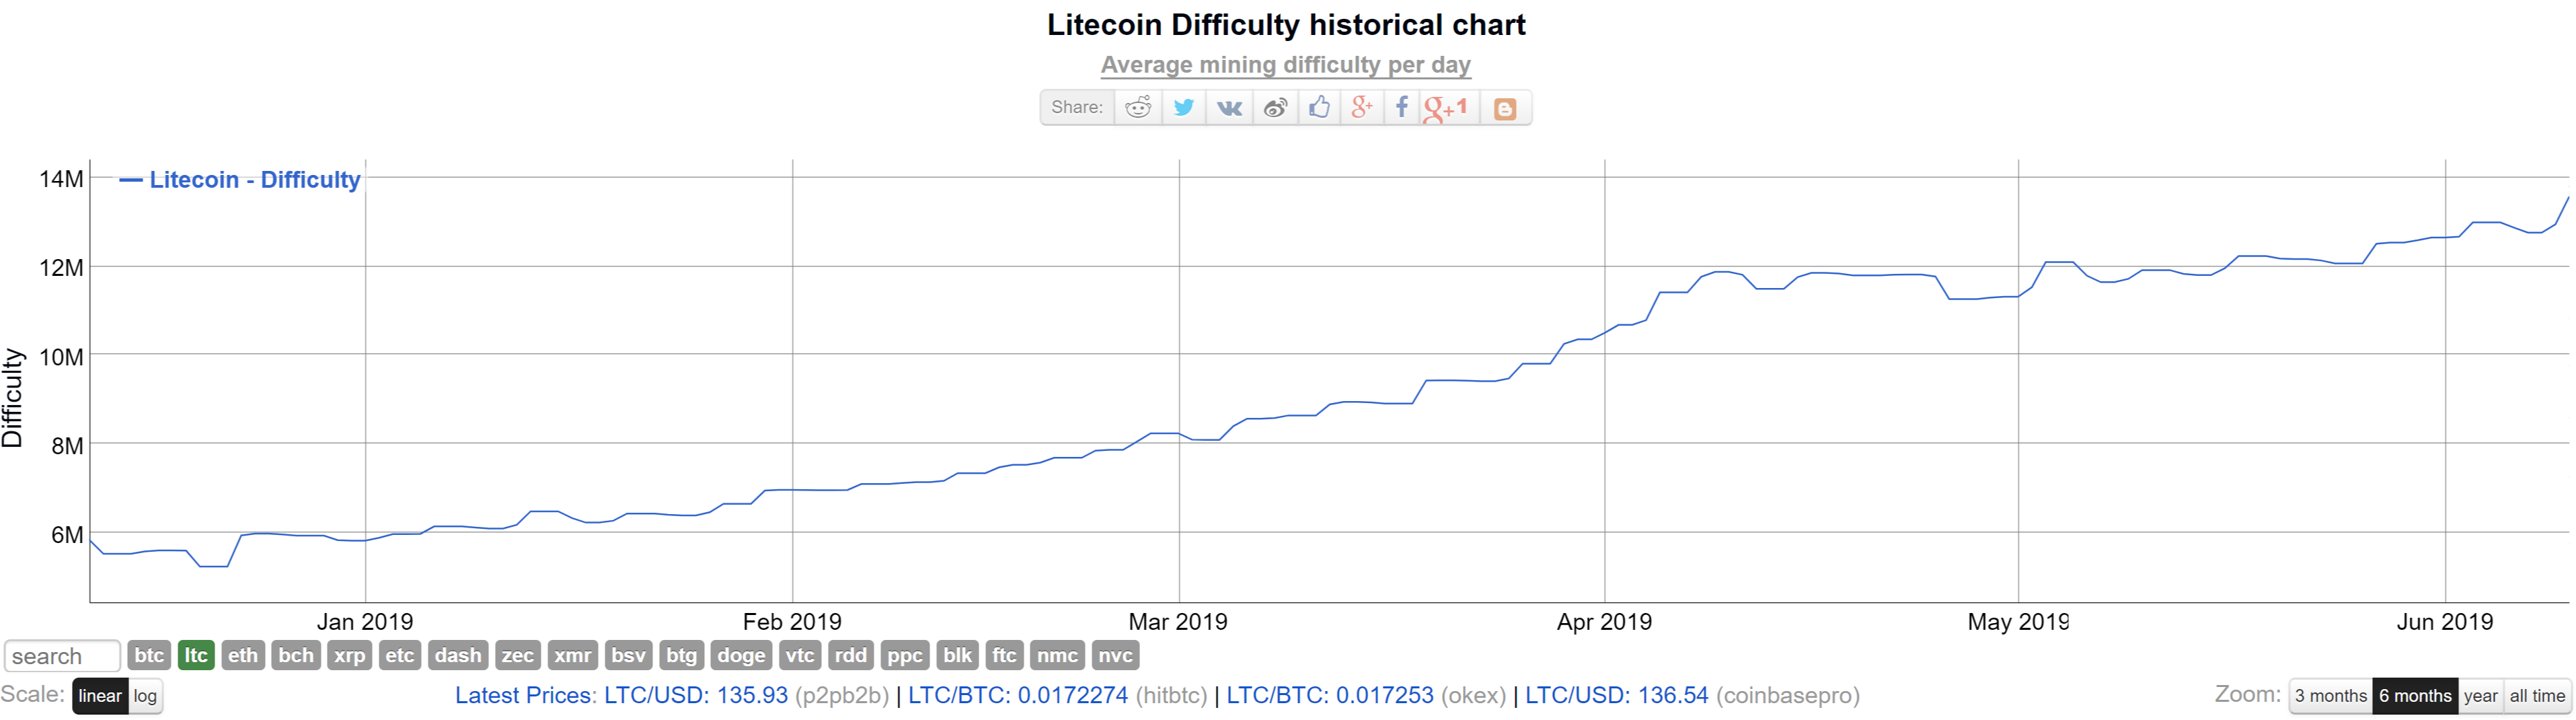 litecoin mining difficulty